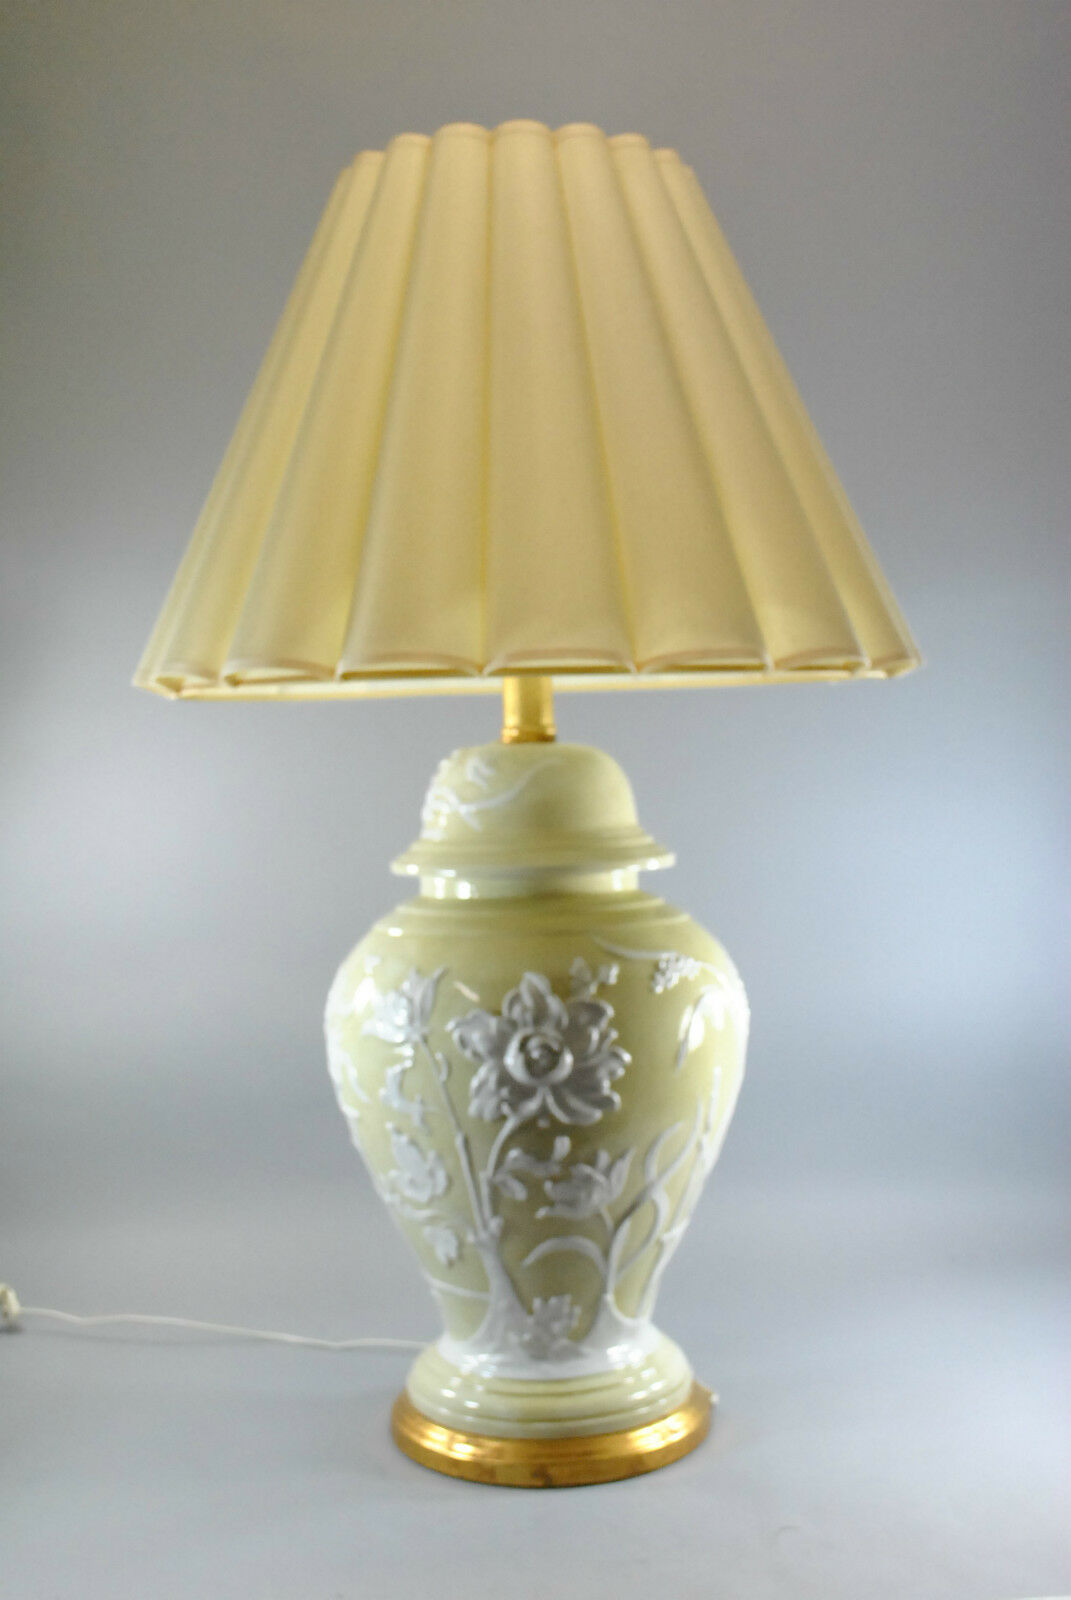 Vintage Oversized Ceramic Lamp In Pale Gold With